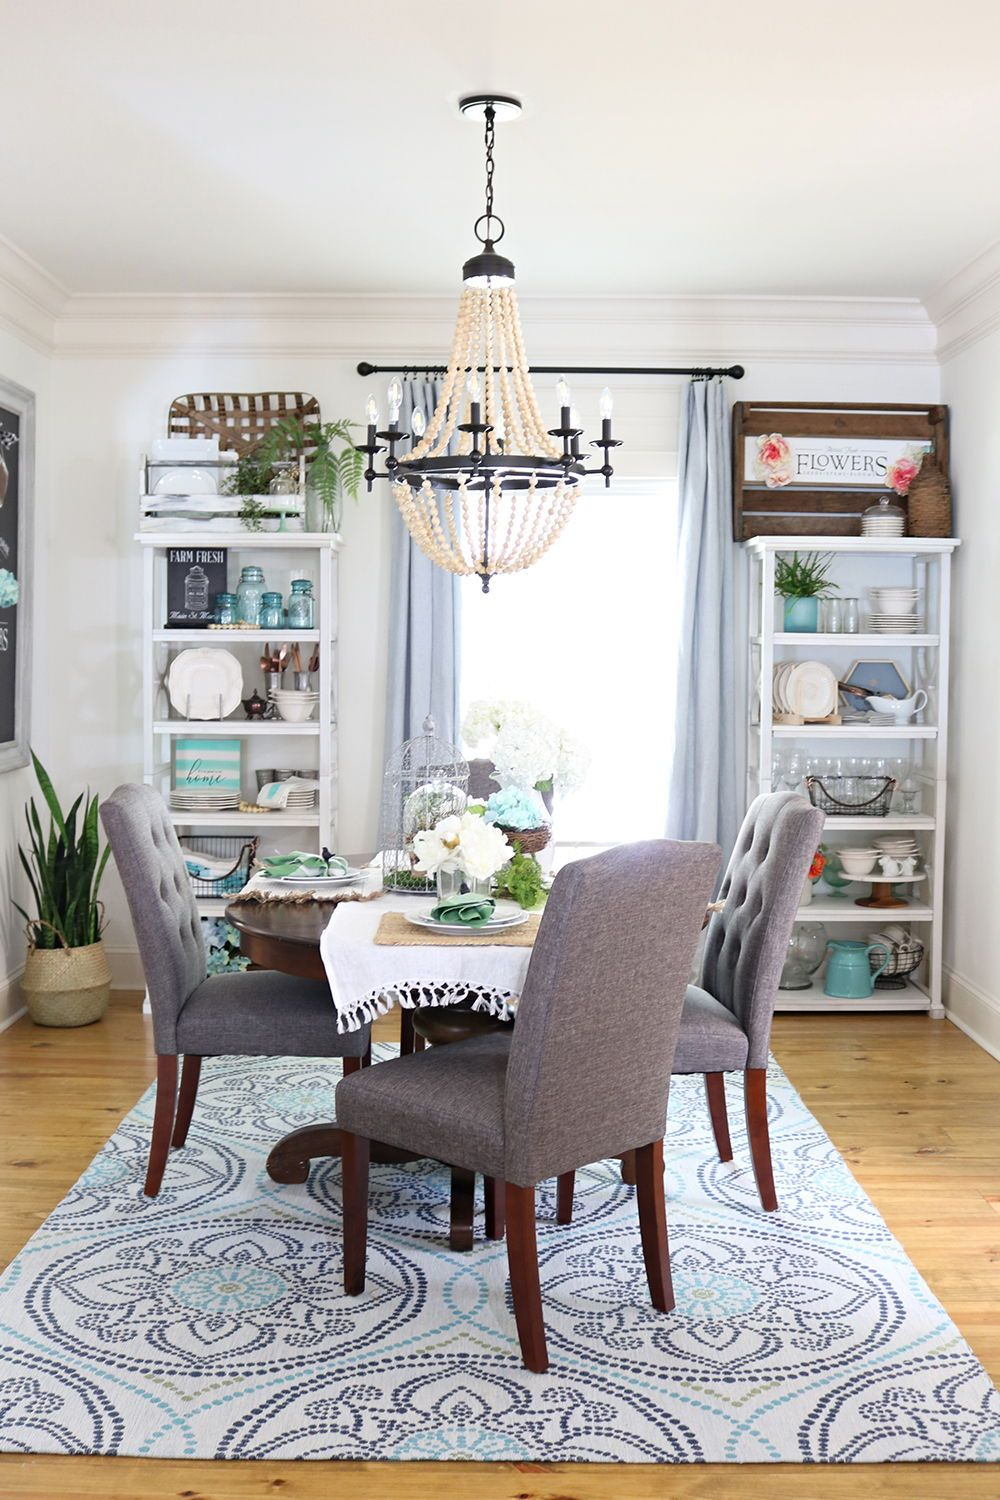 Home Tufted Dining Chairs Dining Room Shelves Elegant Dining Room